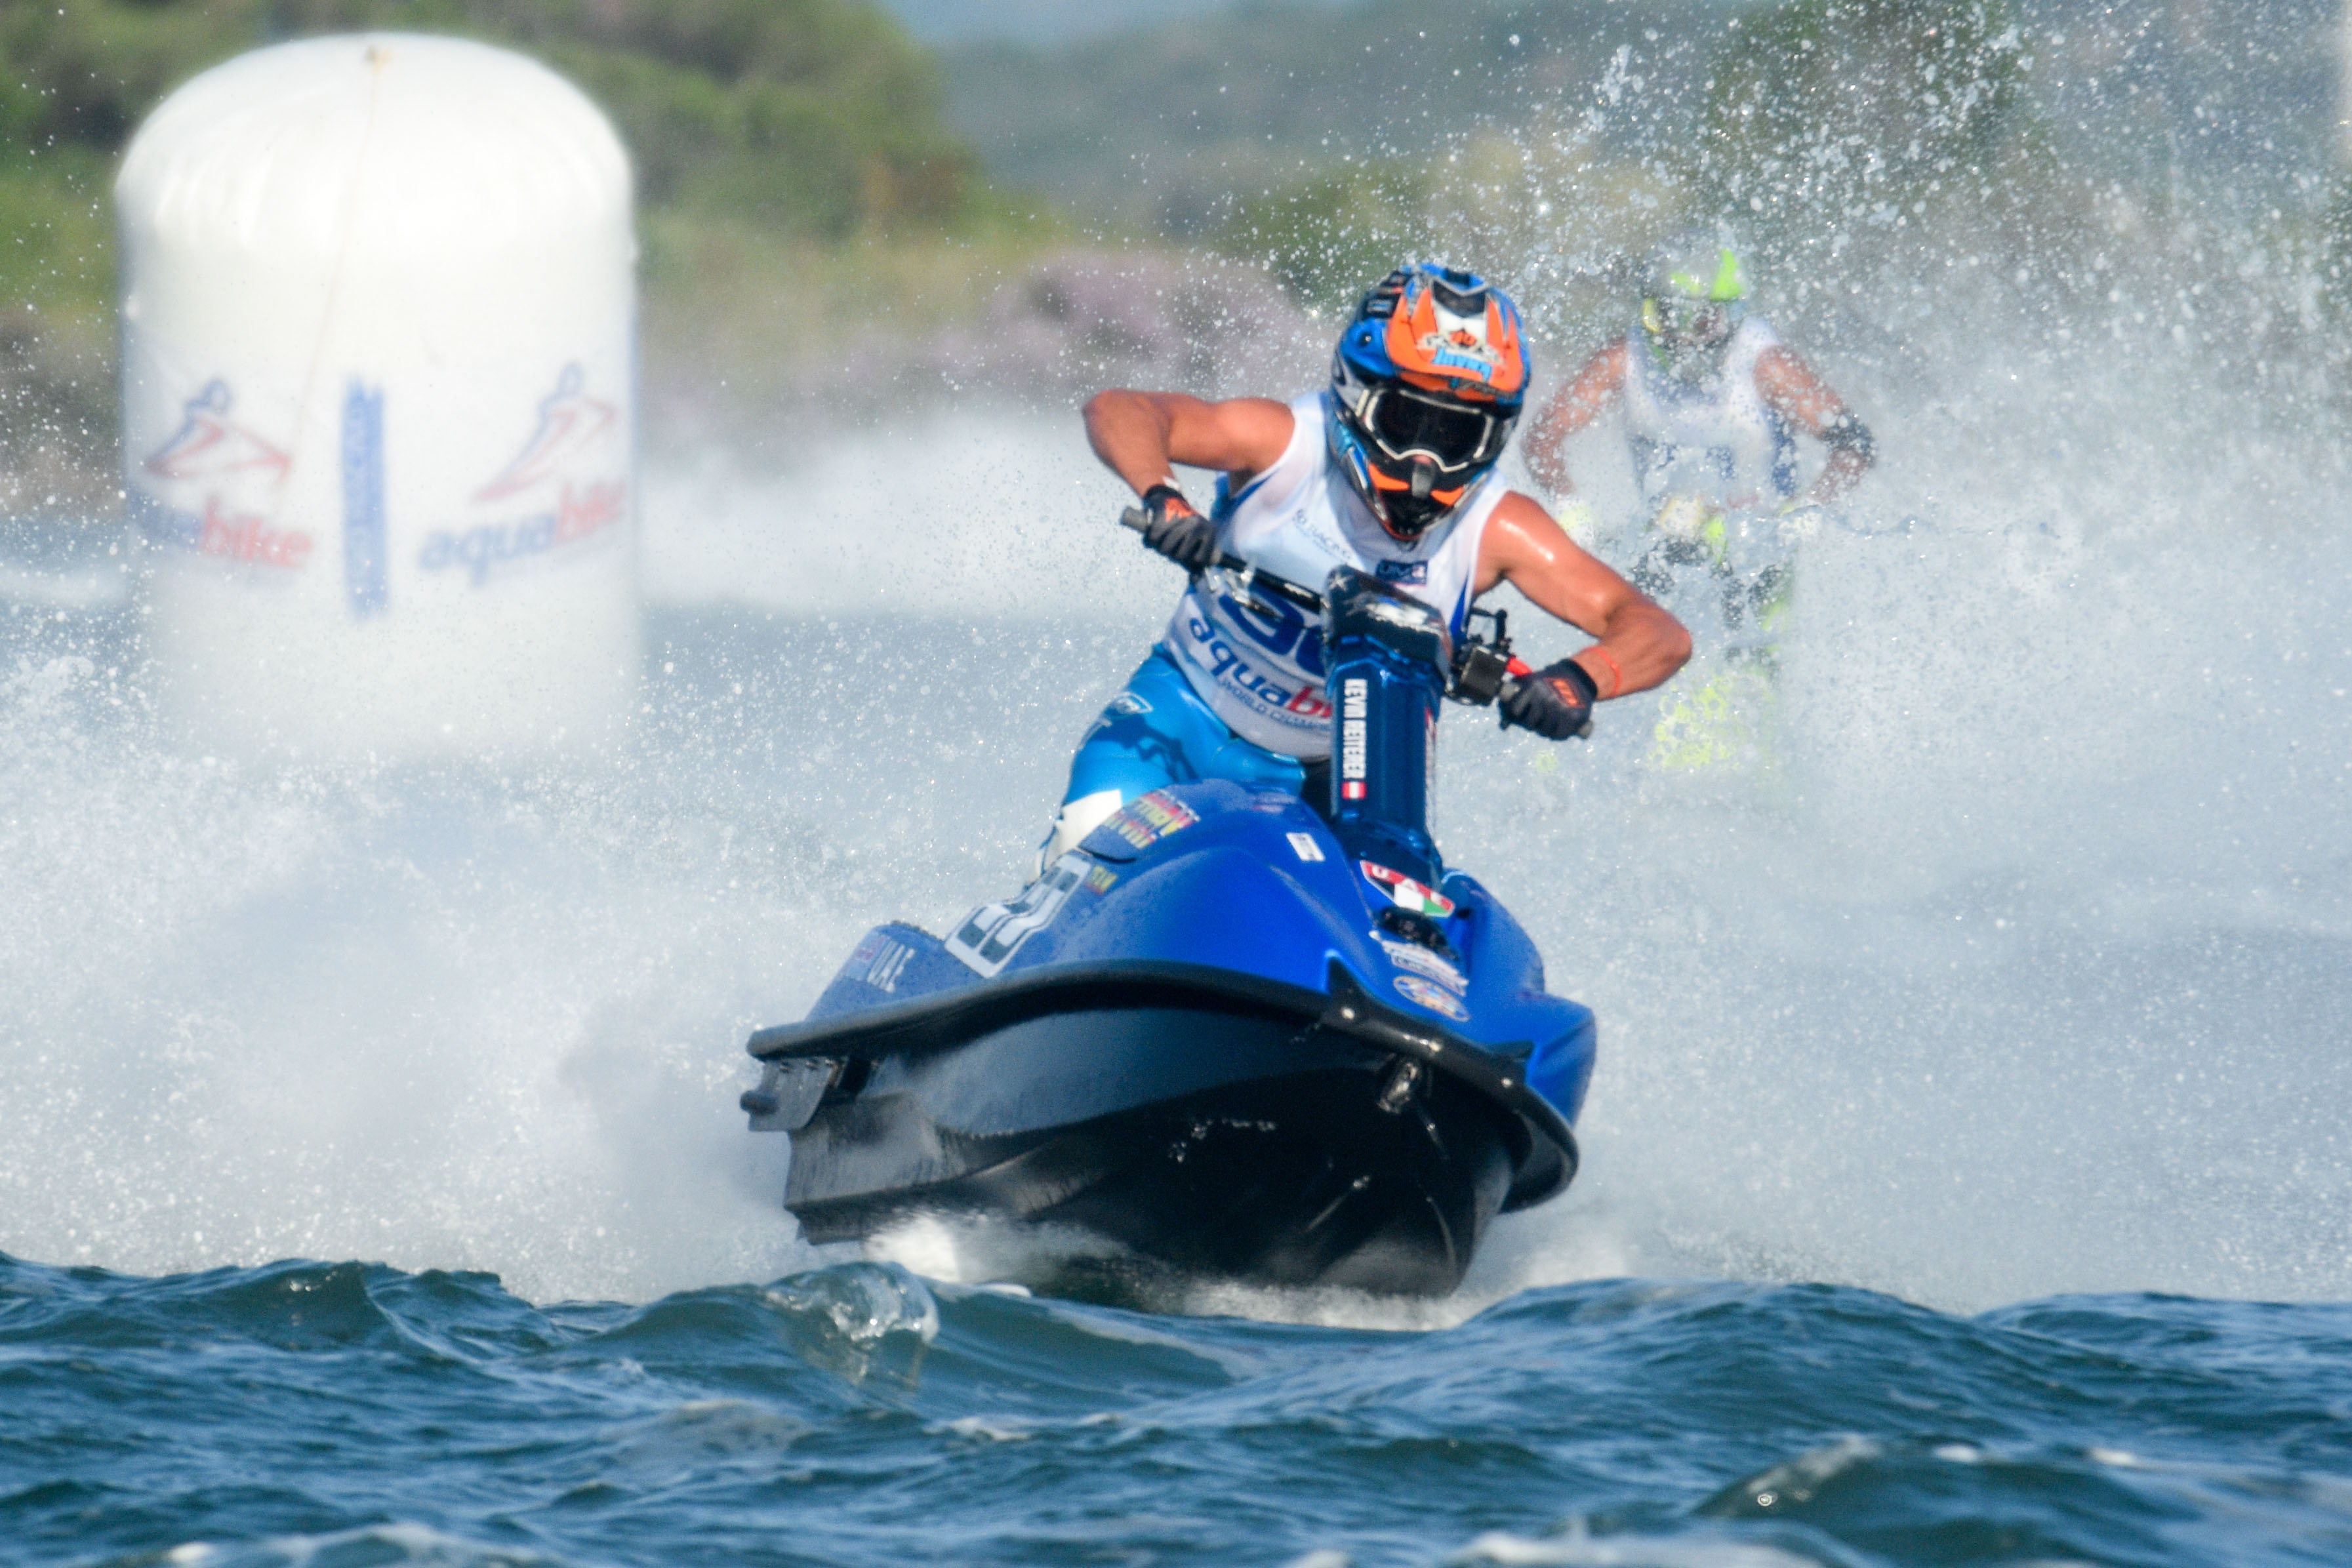 REITERER WIN-DOUBLE IN OLBIA GIVES VICTORY TEAM MAIDEN GRAND PRIX WIN